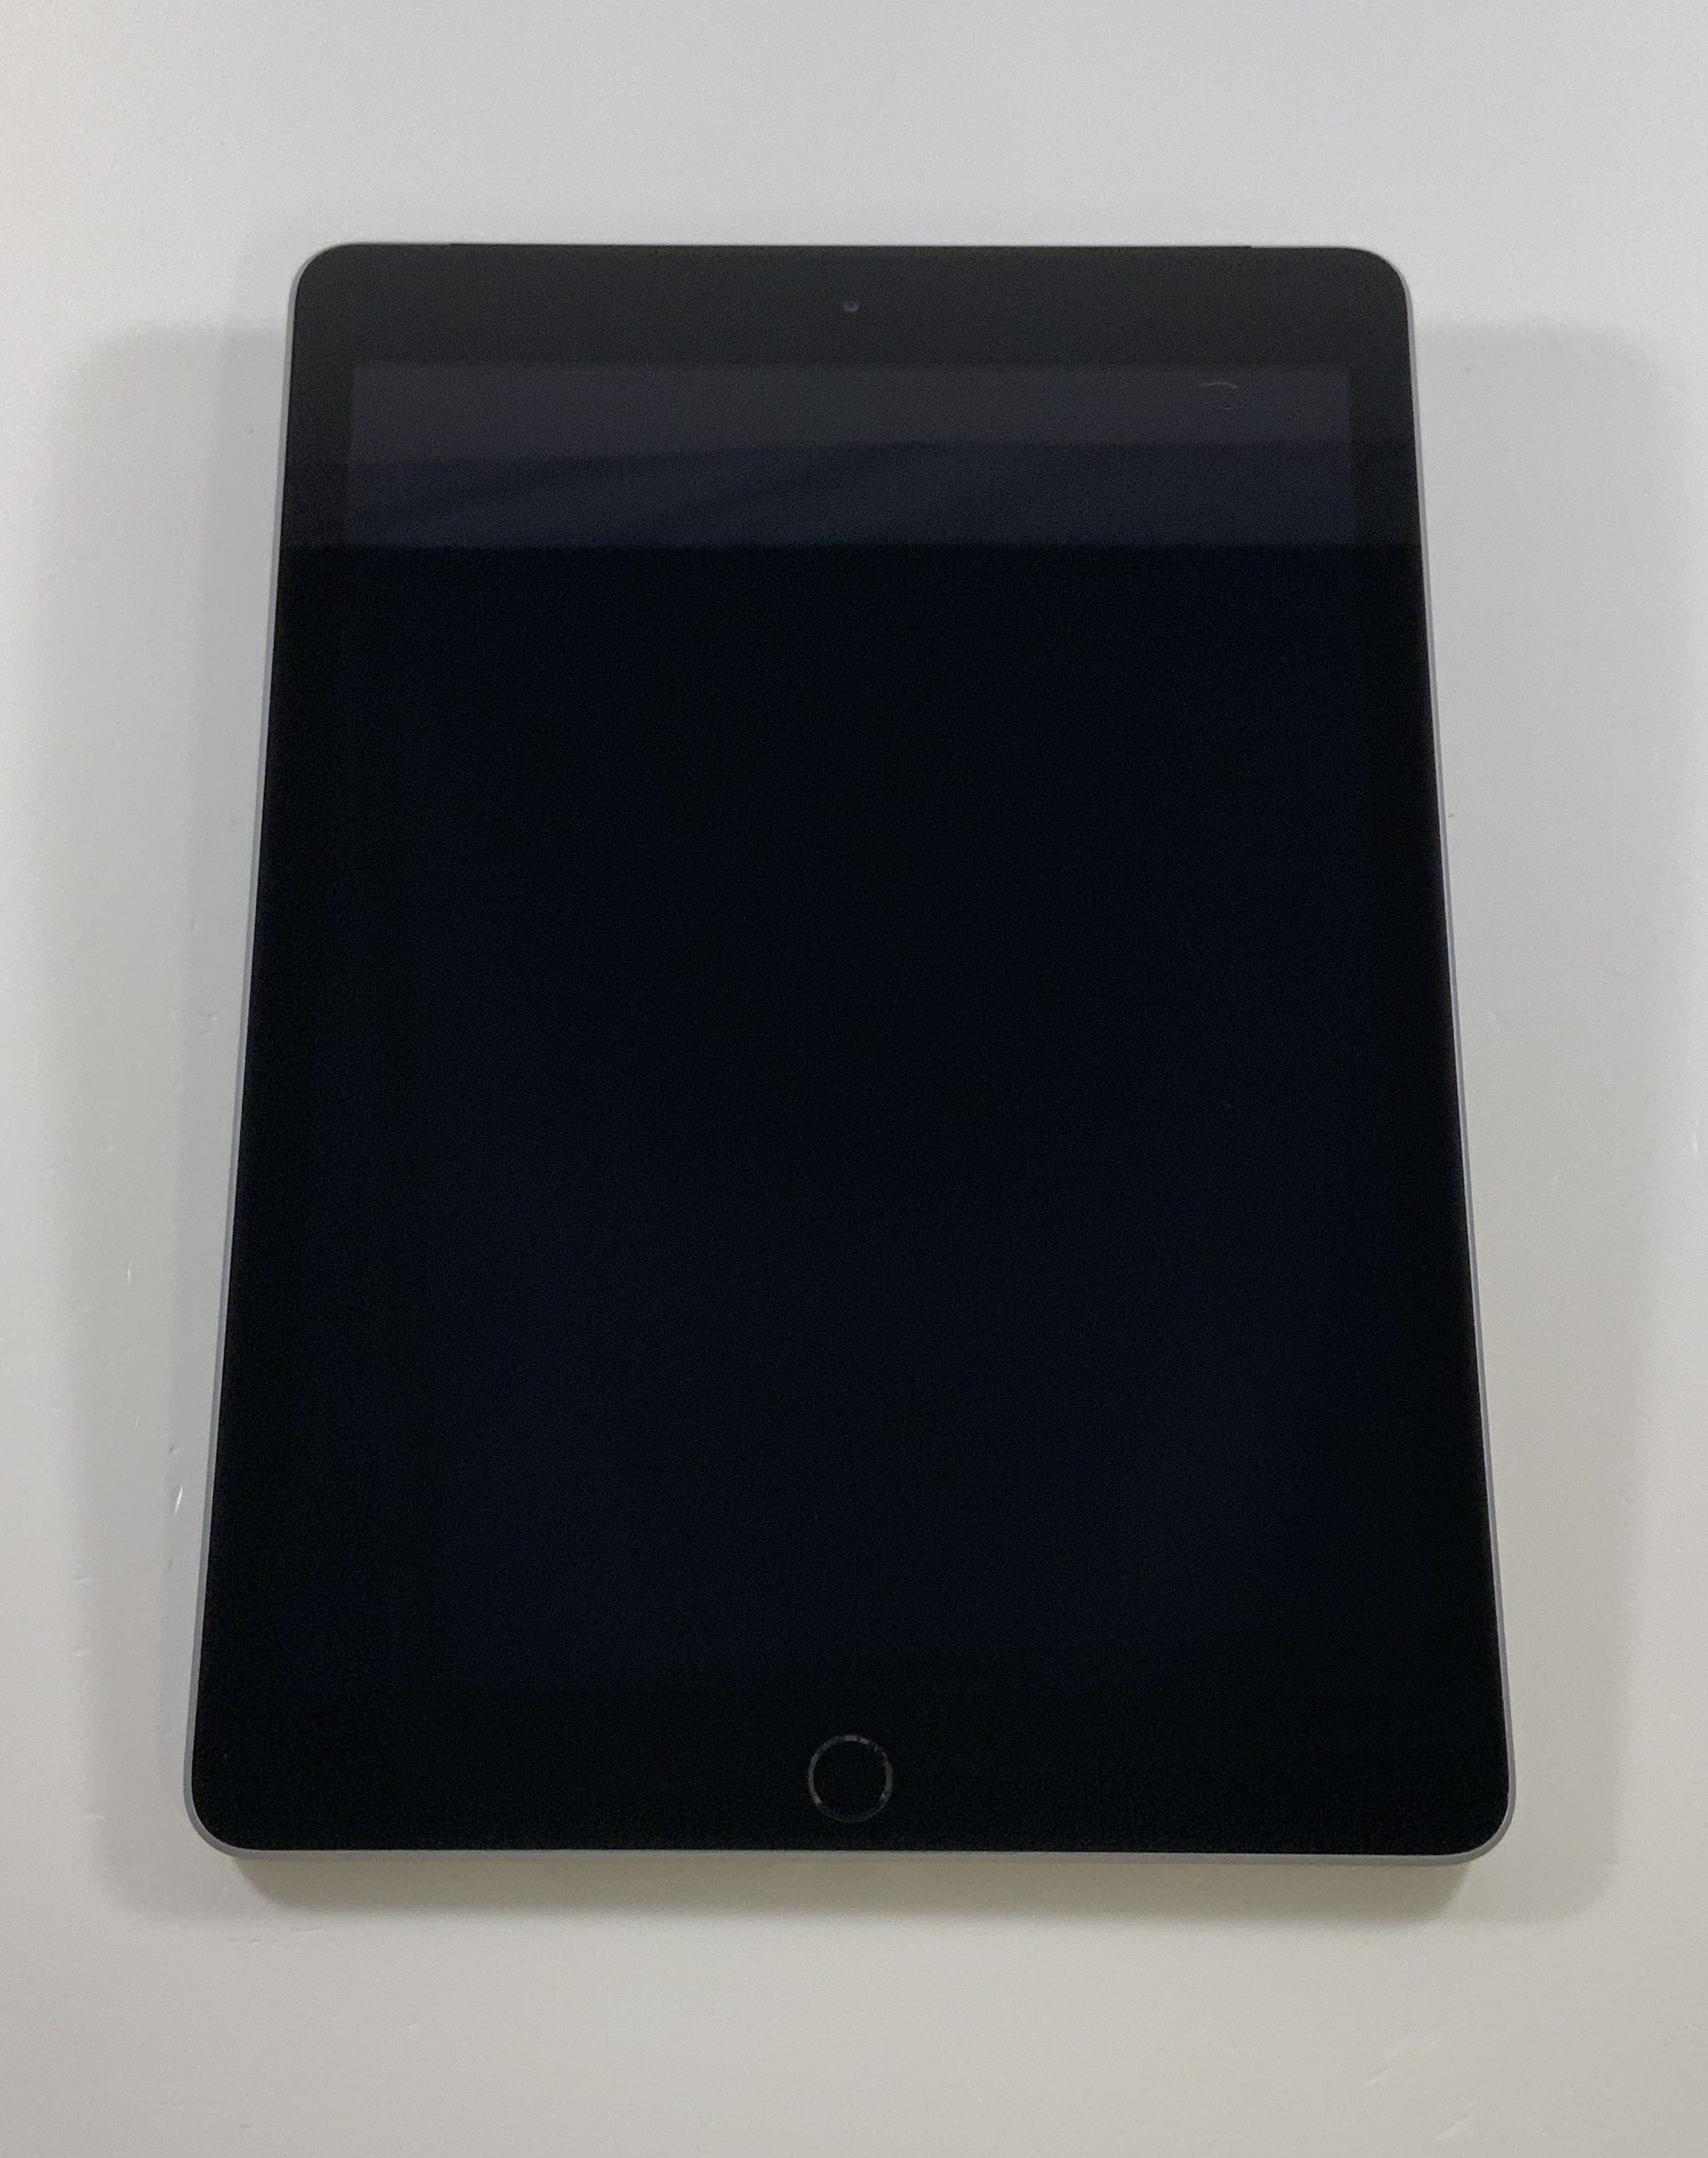 iPad 5 Wi-Fi + Cellular 128GB, 128GB, Space Gray, immagine 1